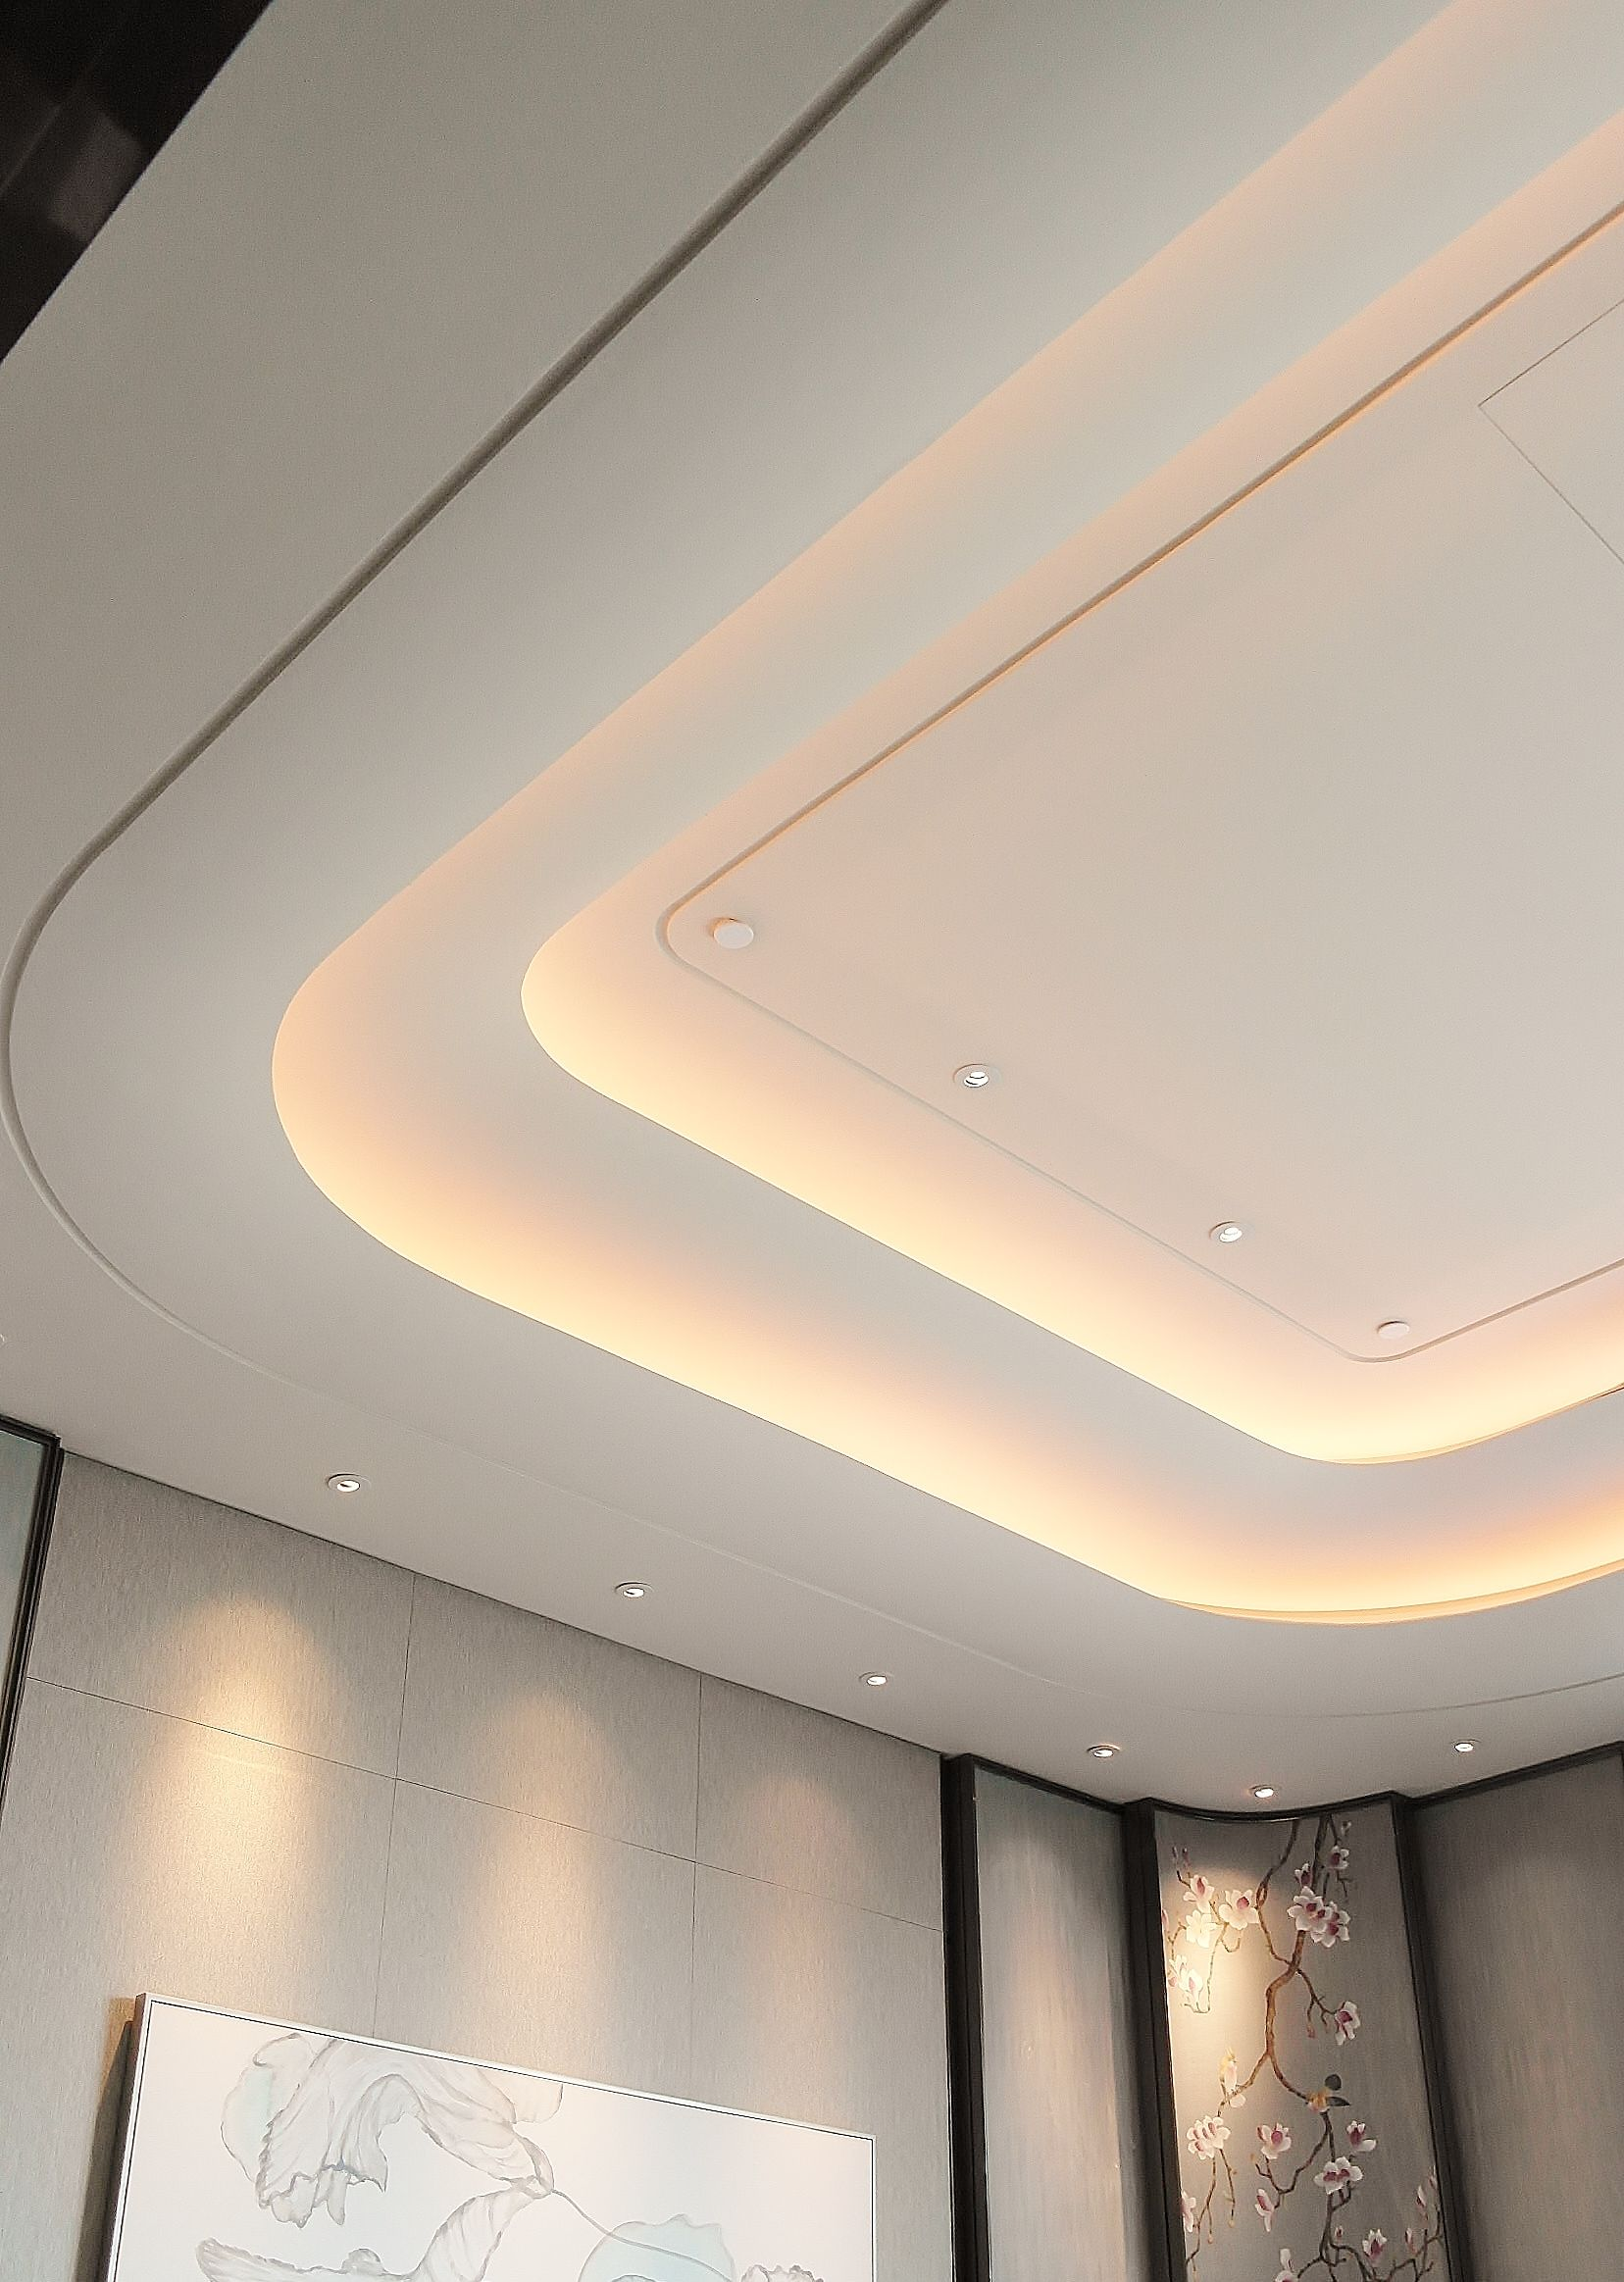 Chinese Restaurant Vip Private Dining Room Ceiling Design Modern